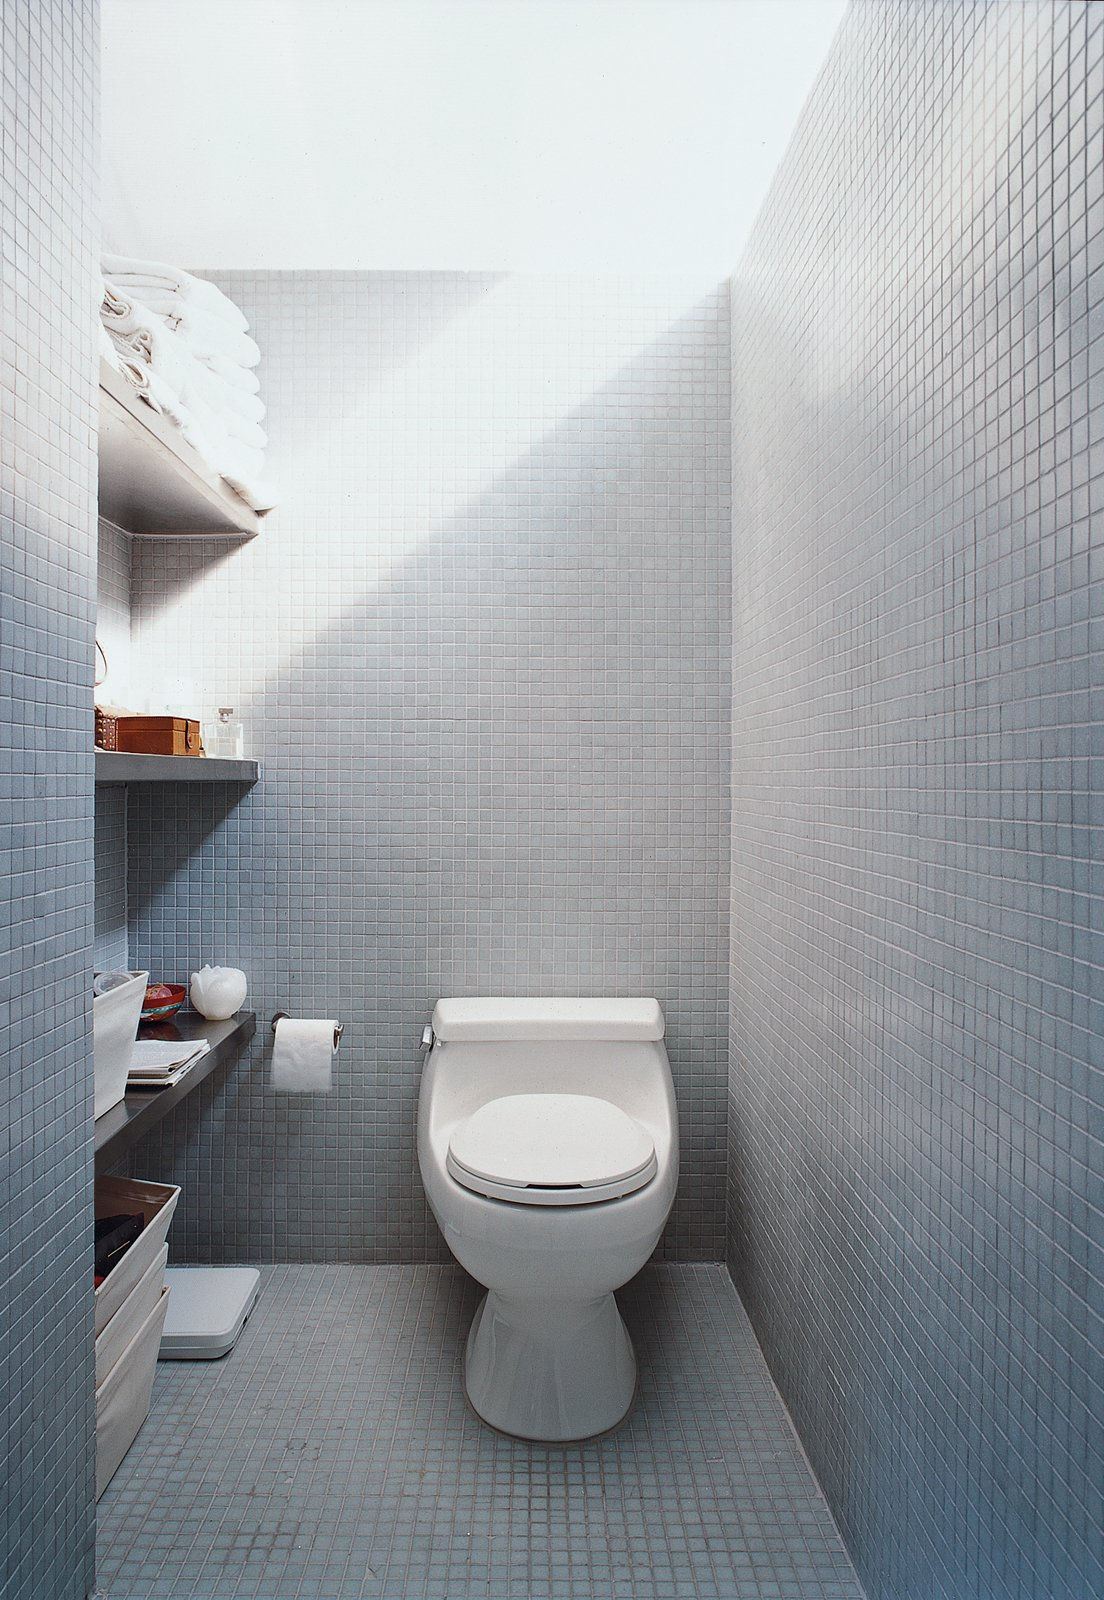 Bath Room, Ceramic Tile Wall, and One Piece Toilet The LV prototype's bathroom shows how buyers can vary finish levels according to budget.  Photo 8 of 10 in All You Need Is LV